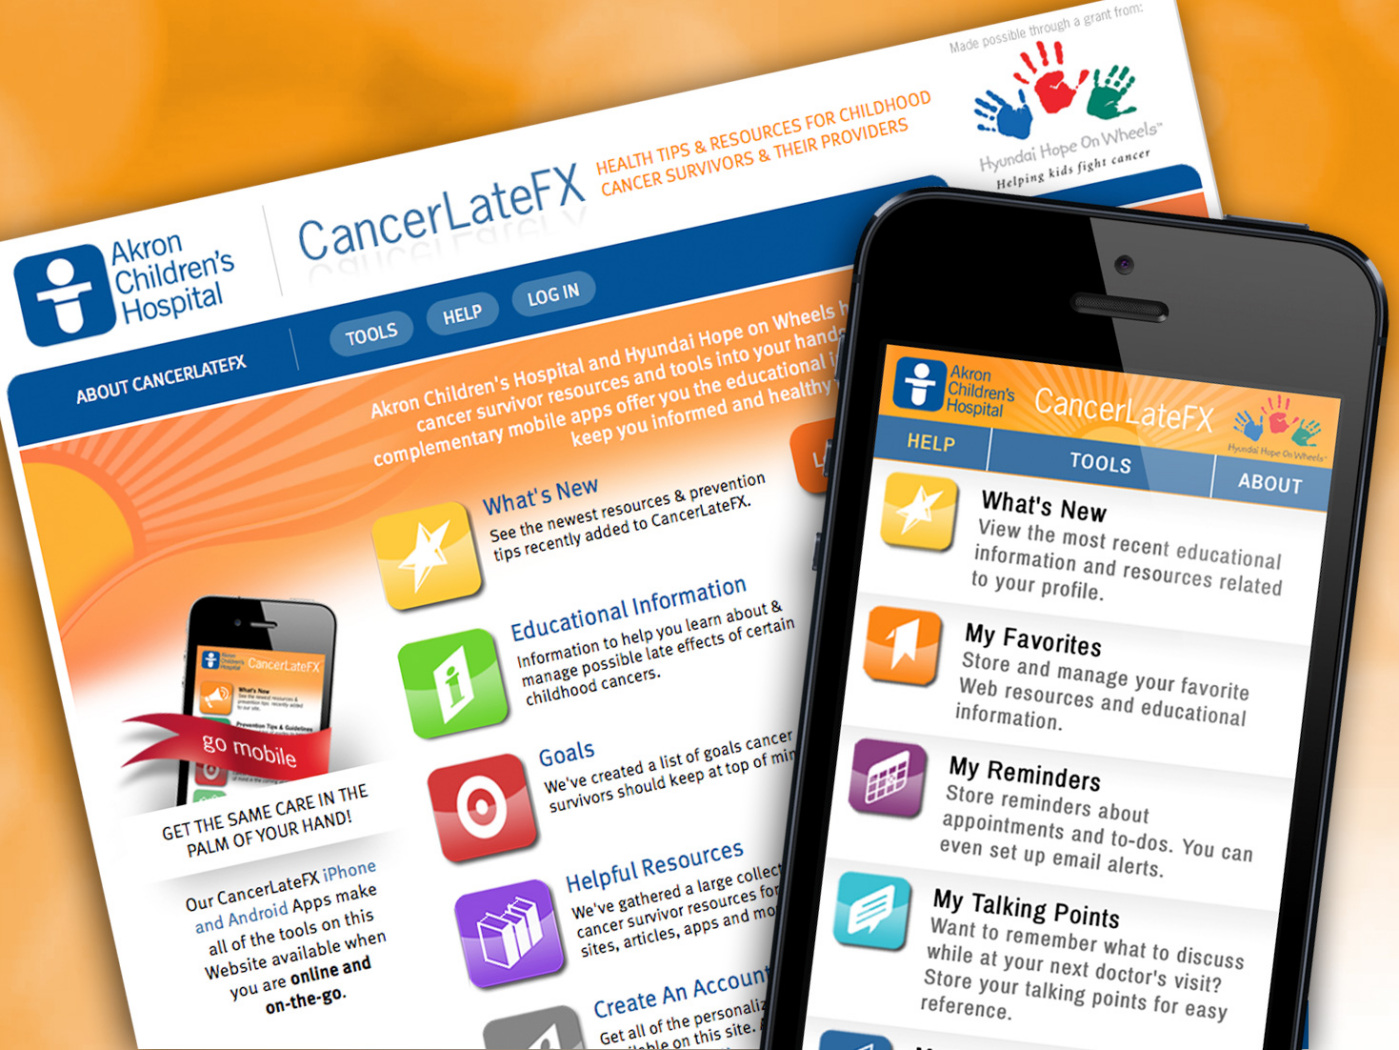 Cancer LateFX Website and App for iPhone and Android